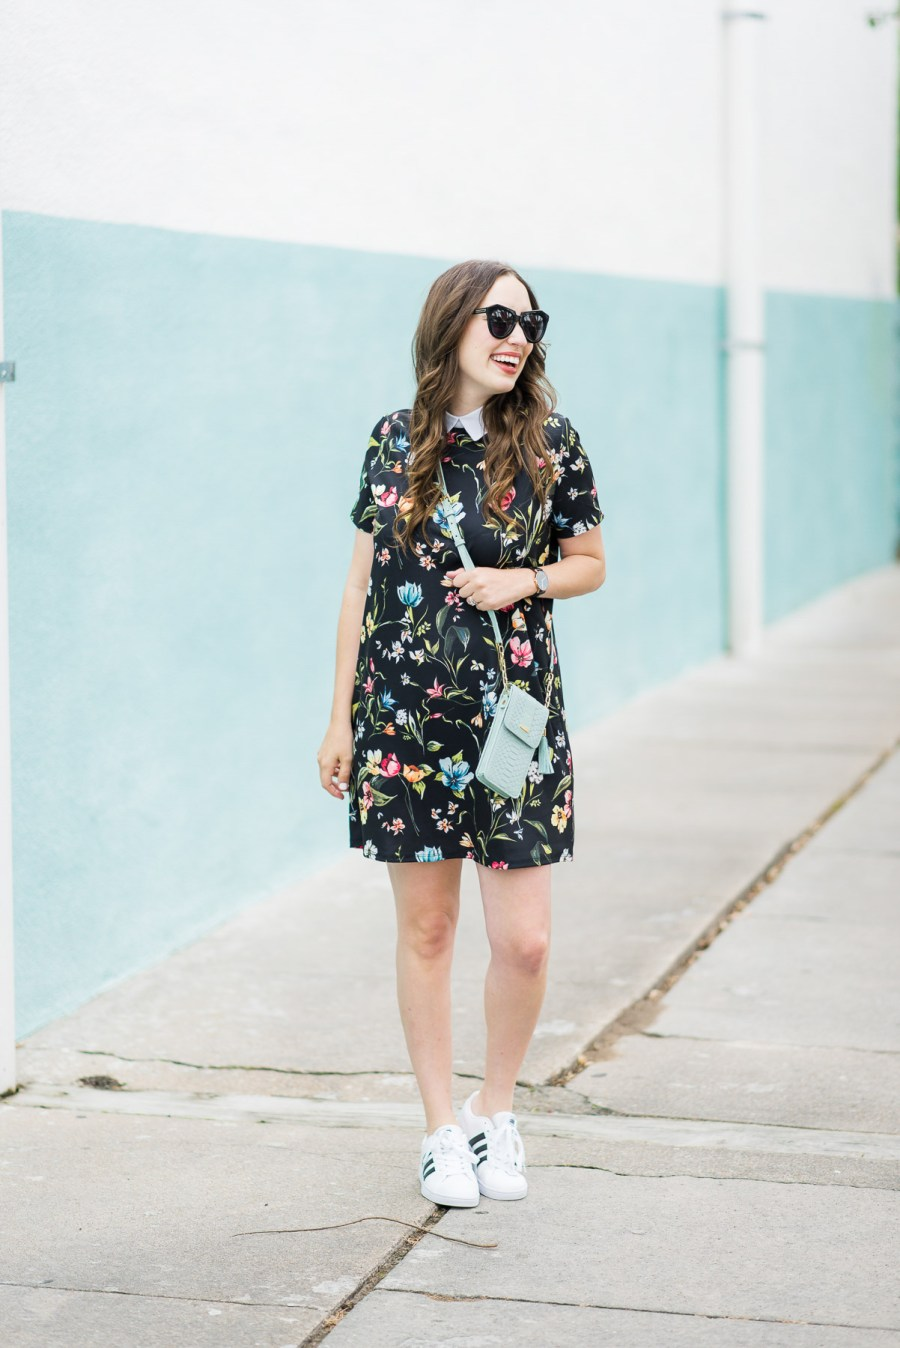 Floral_Shirt_Dress_Adidas_Sneakers-9